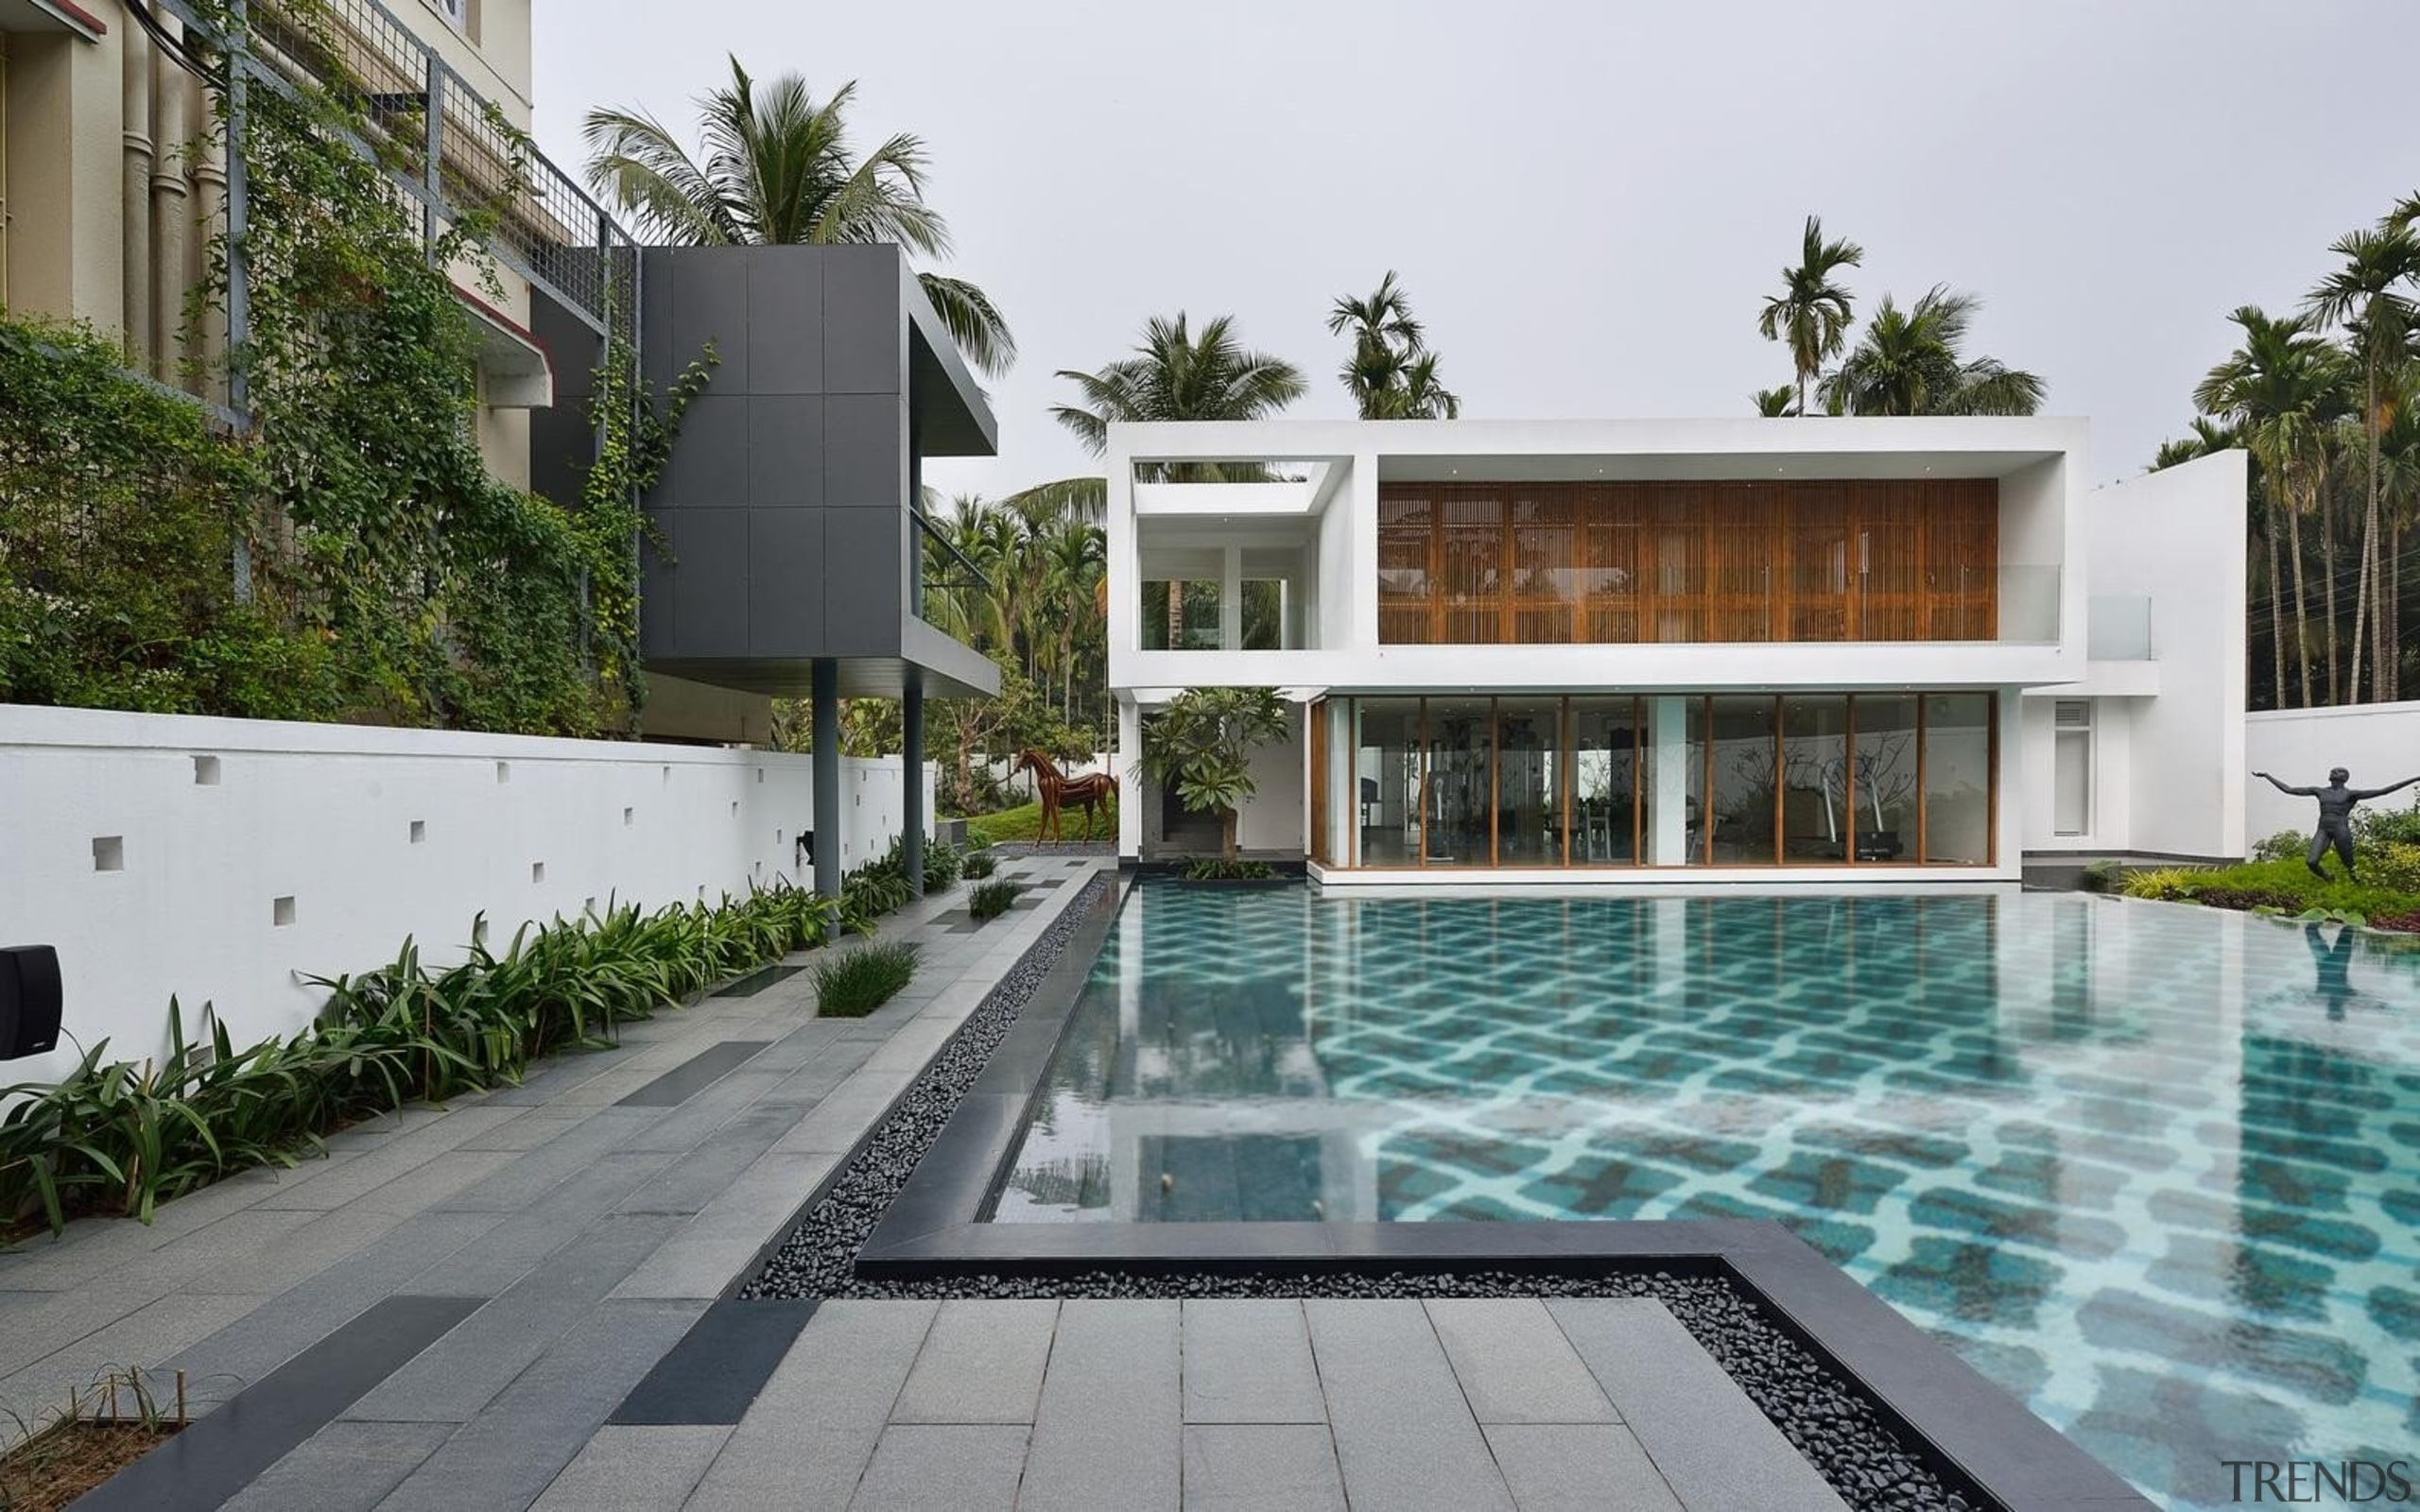 See more images of this pool house apartment, architecture, condominium, estate, home, house, leisure, property, real estate, resort, swimming pool, villa, gray